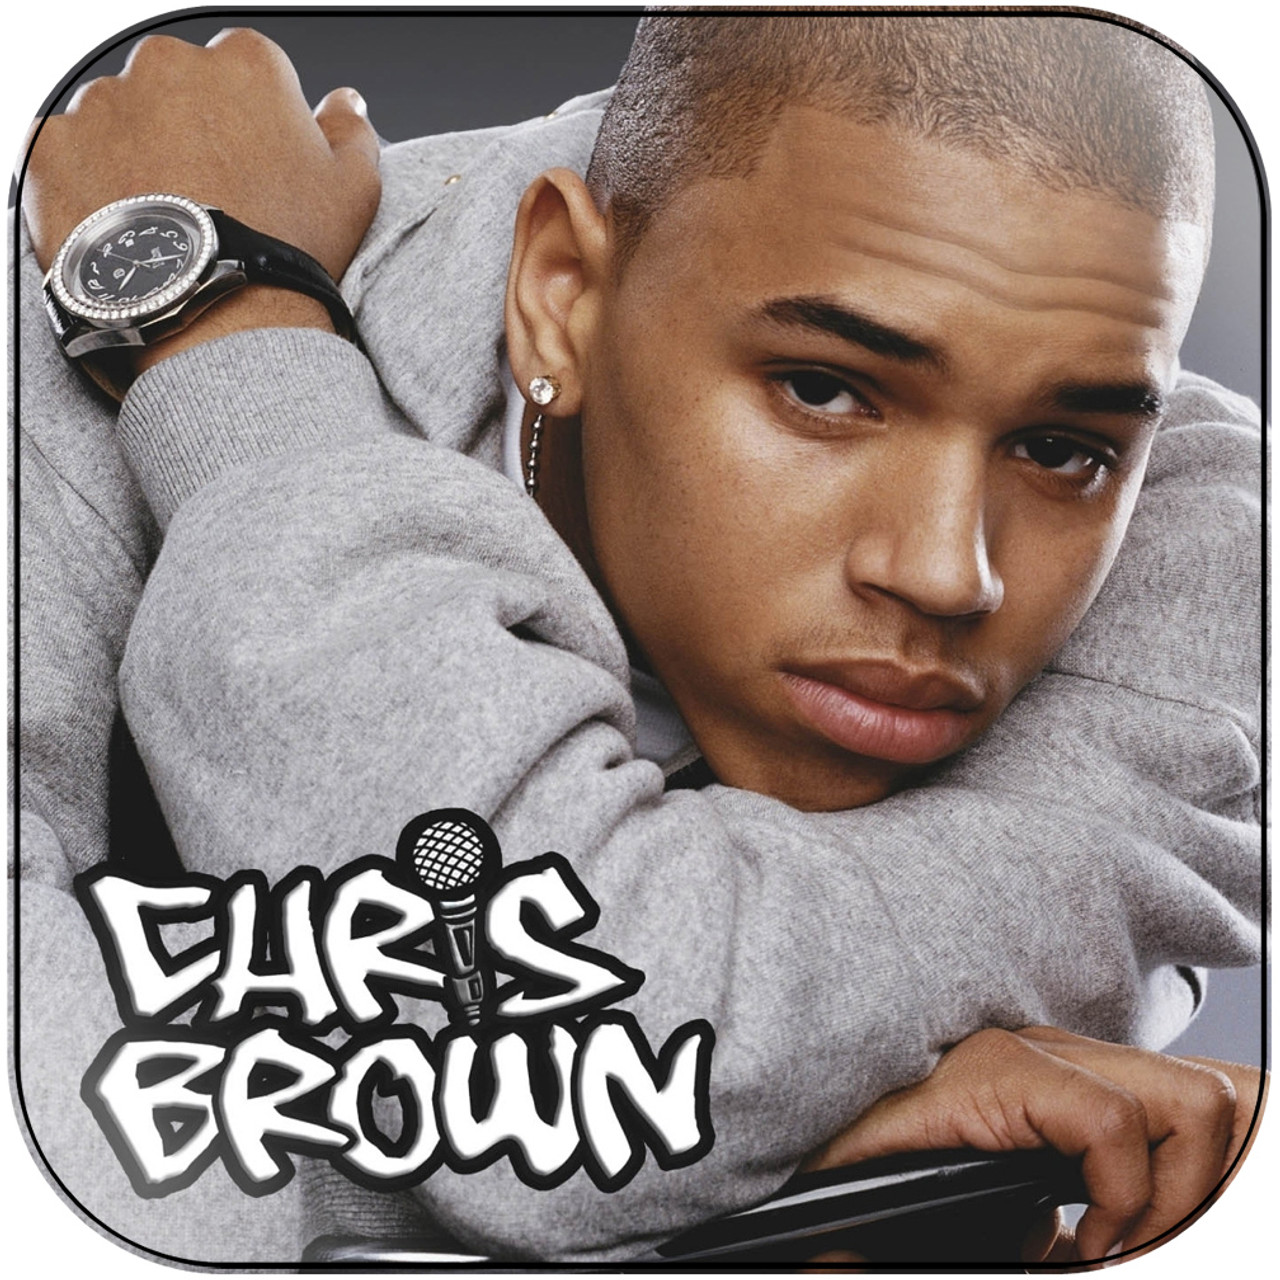 Chris Brown - Fame Album Cover Sticker Album Cover Sticker